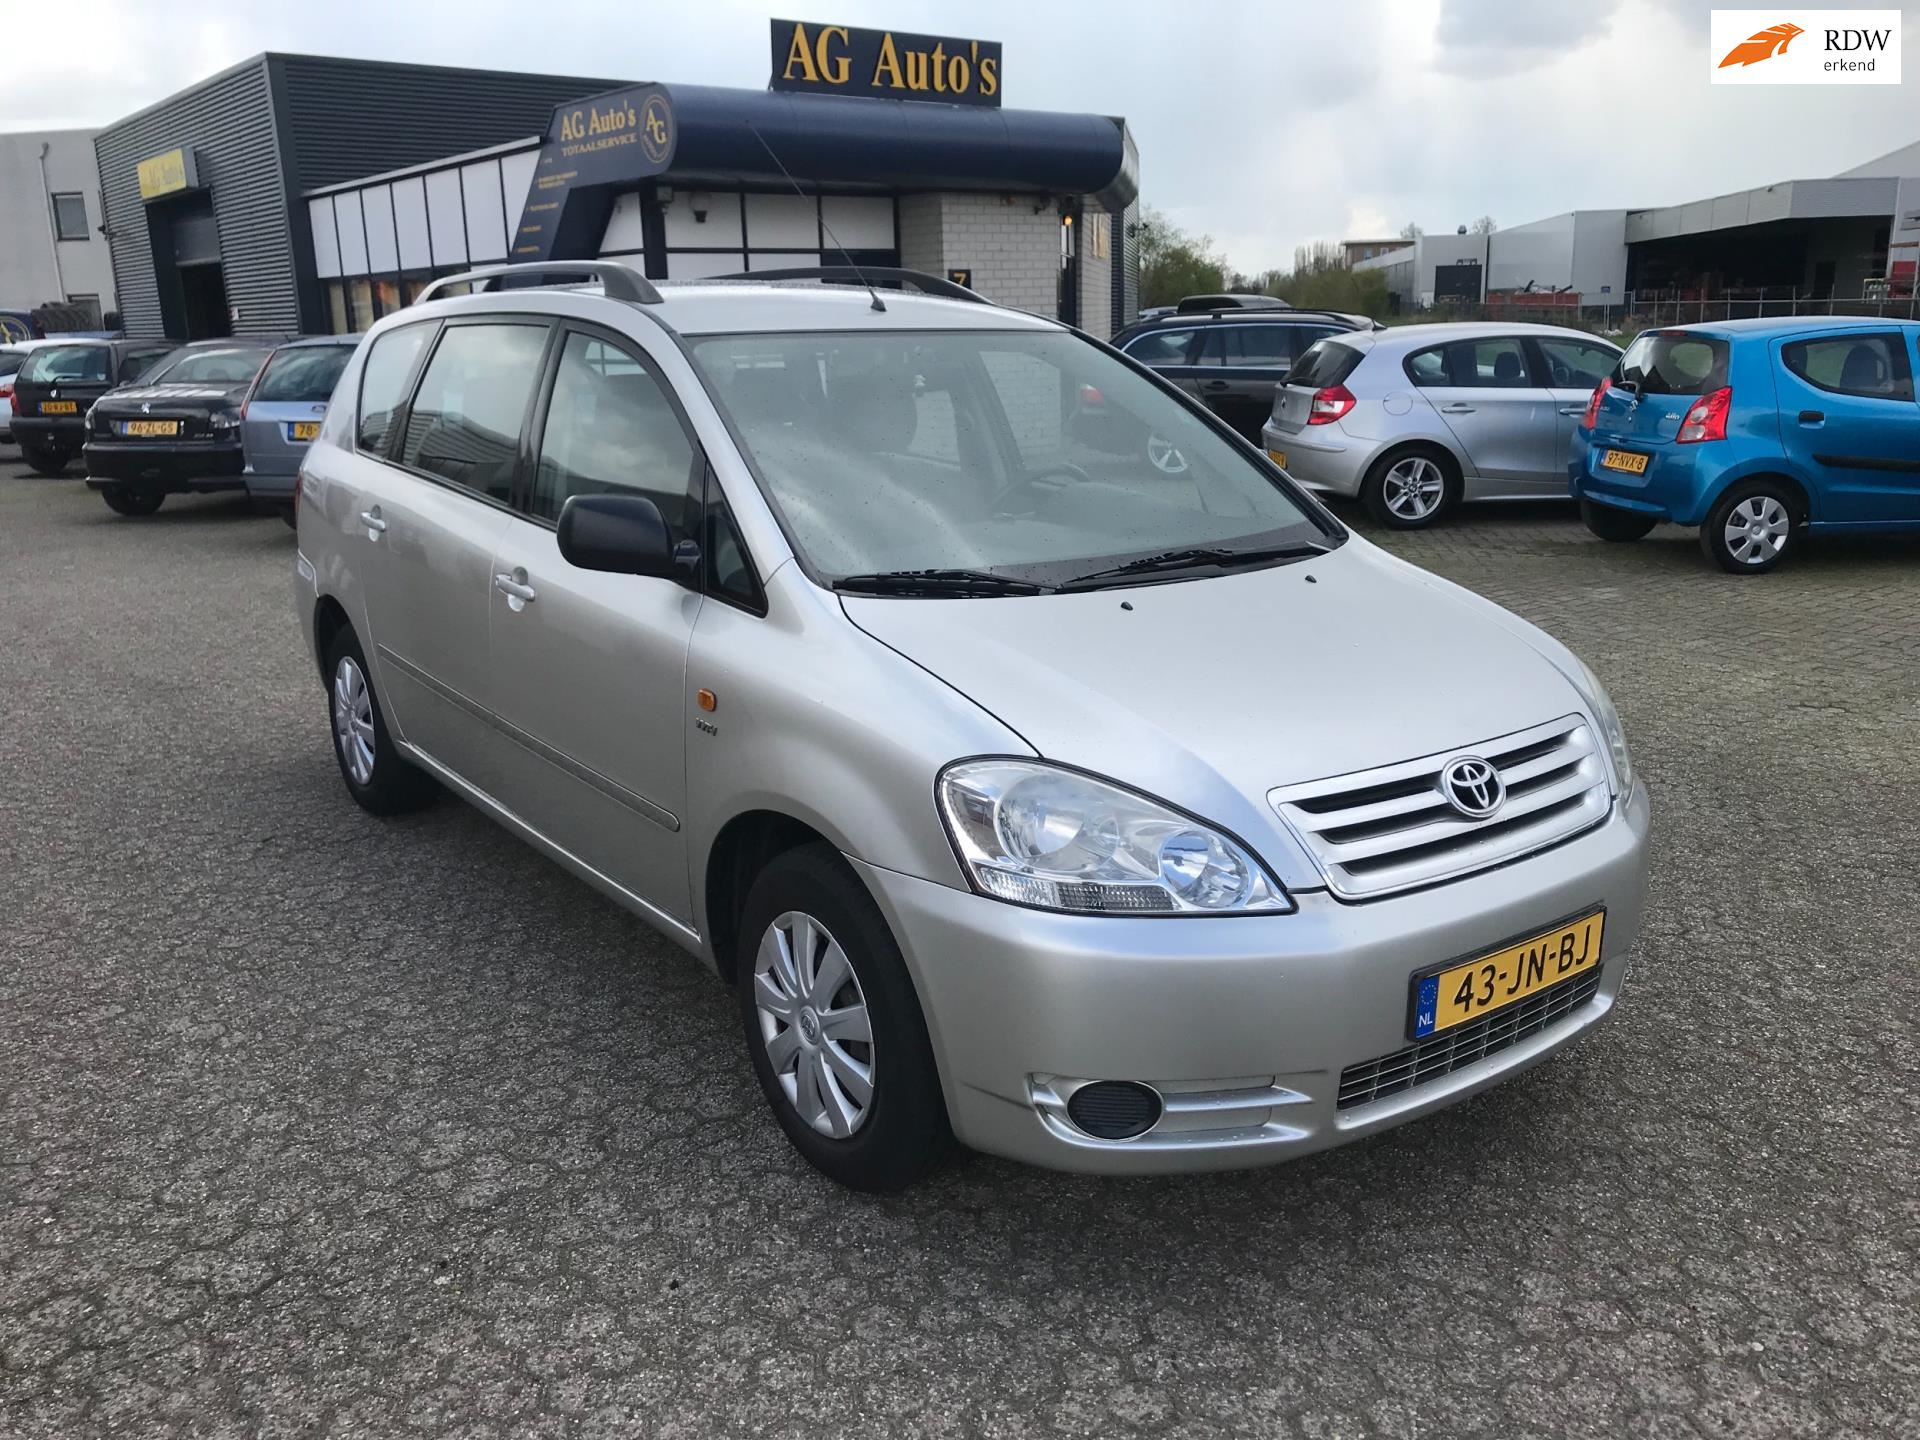 Toyota Avensis Verso occasion - AG Auto's